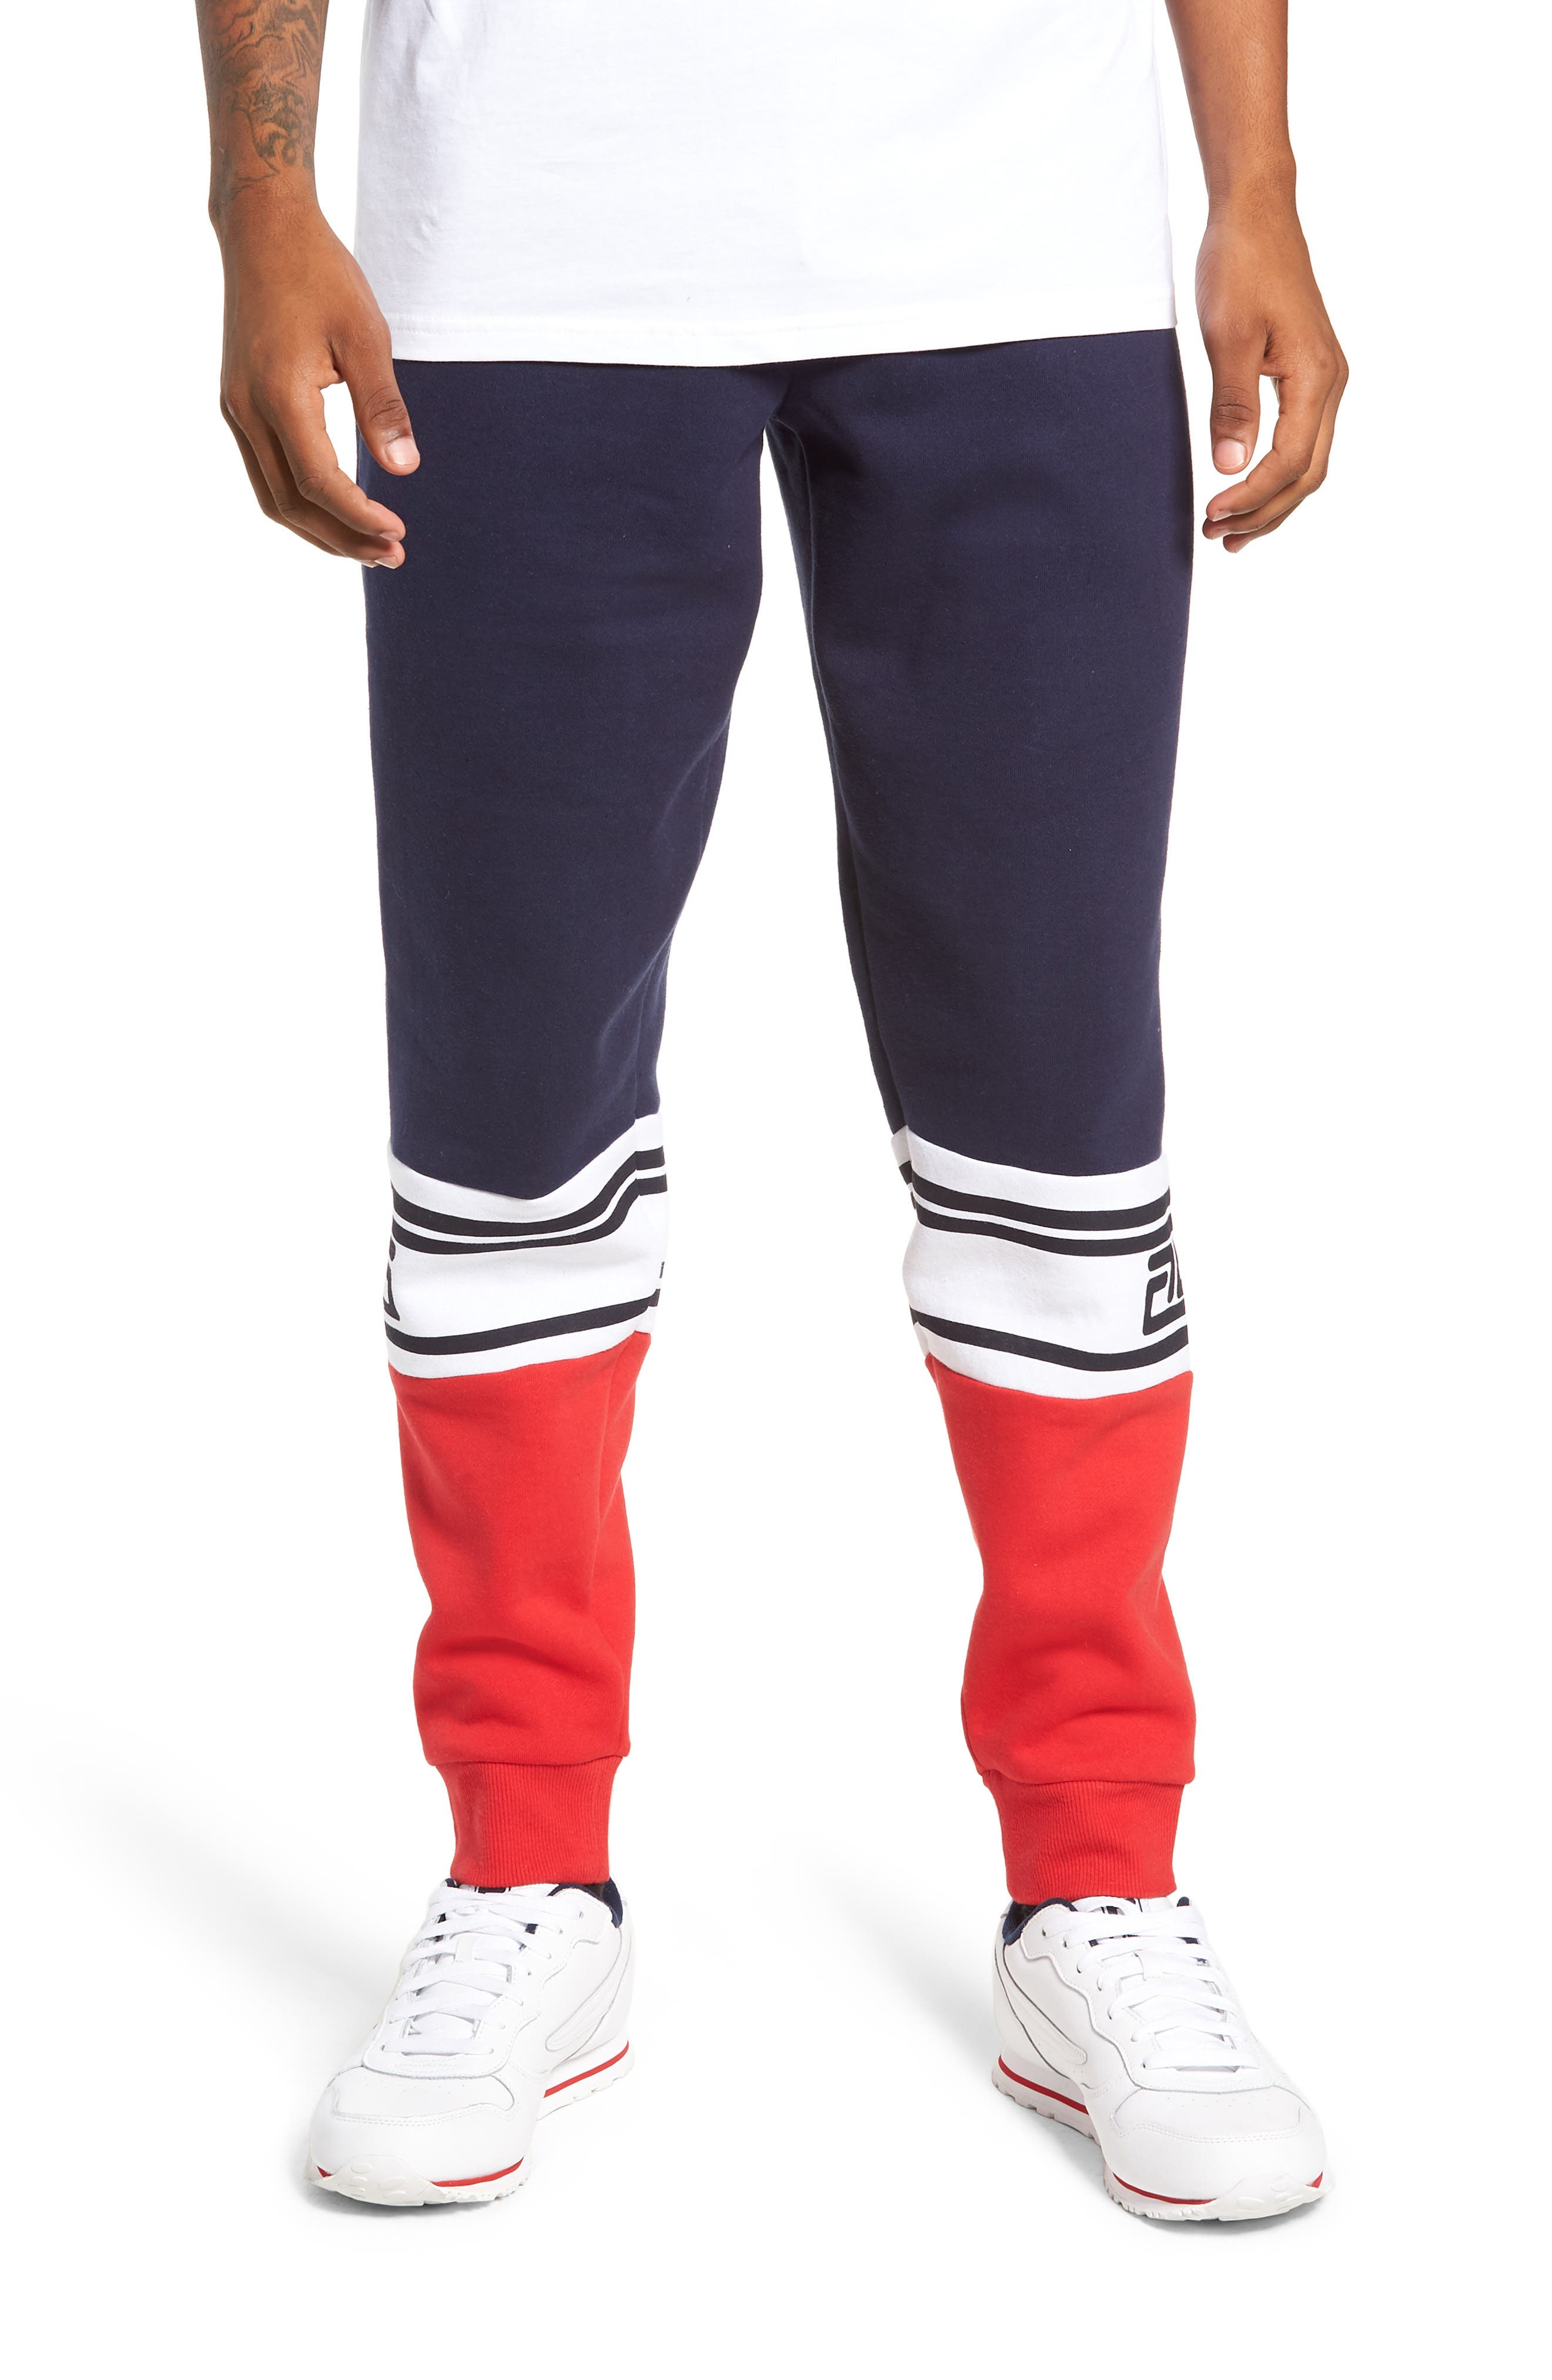 Tricolor Jogger Pants,                             Main thumbnail 1, color,                             PEACOAT/ CHINESE RED